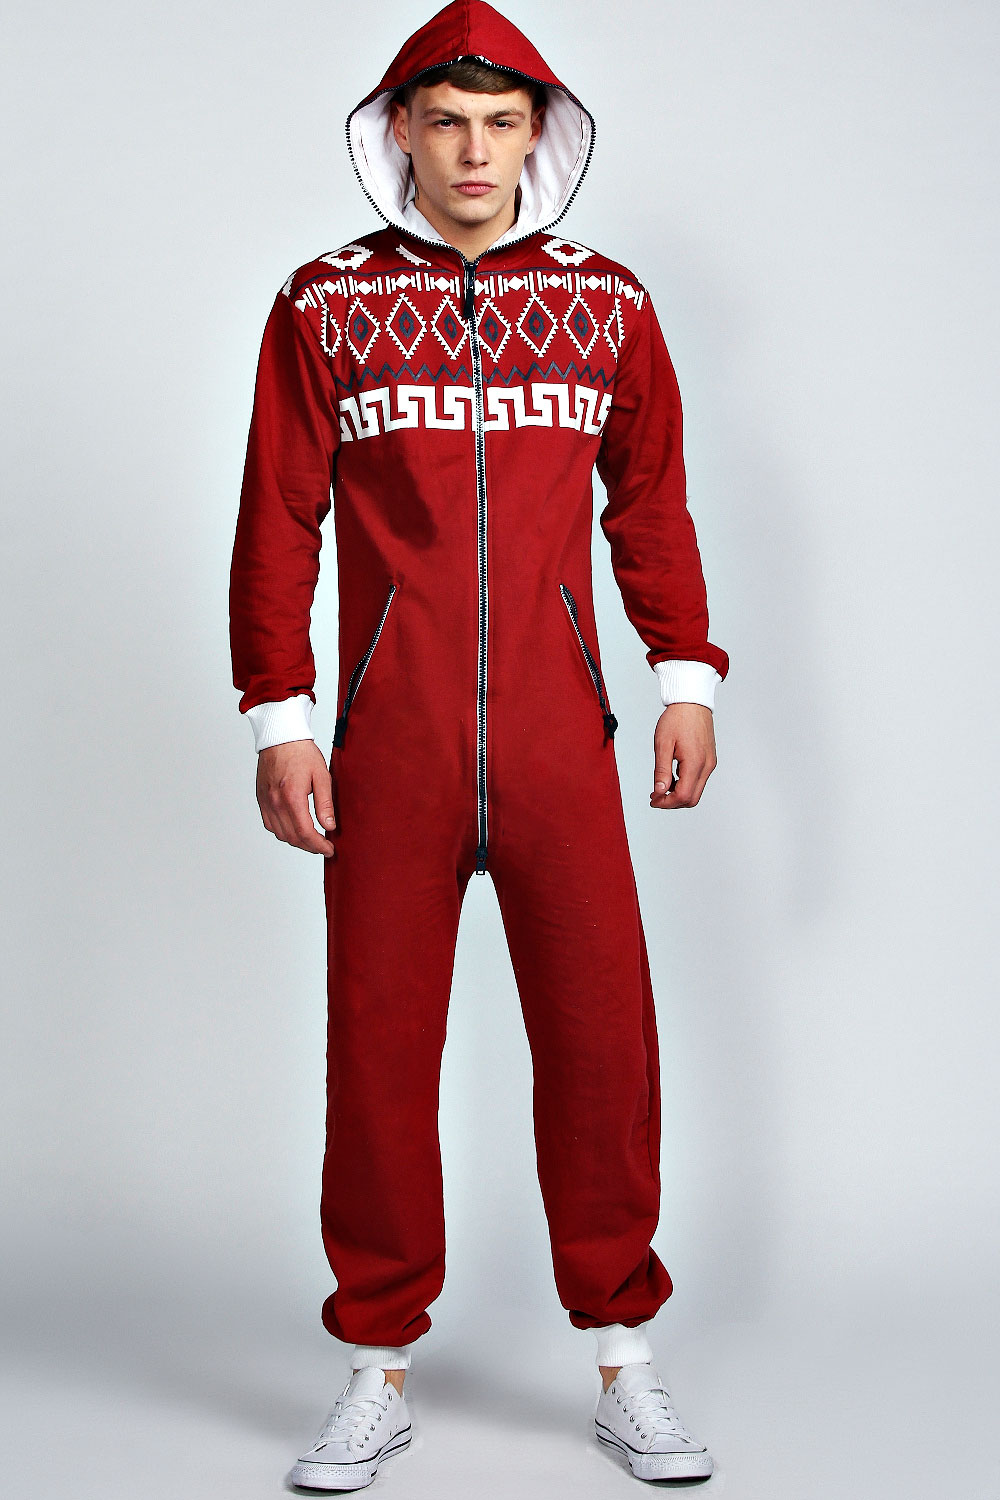 Boohoo-Mens-Long-Sleeve-Hooded-Geometric-Print-Onesie